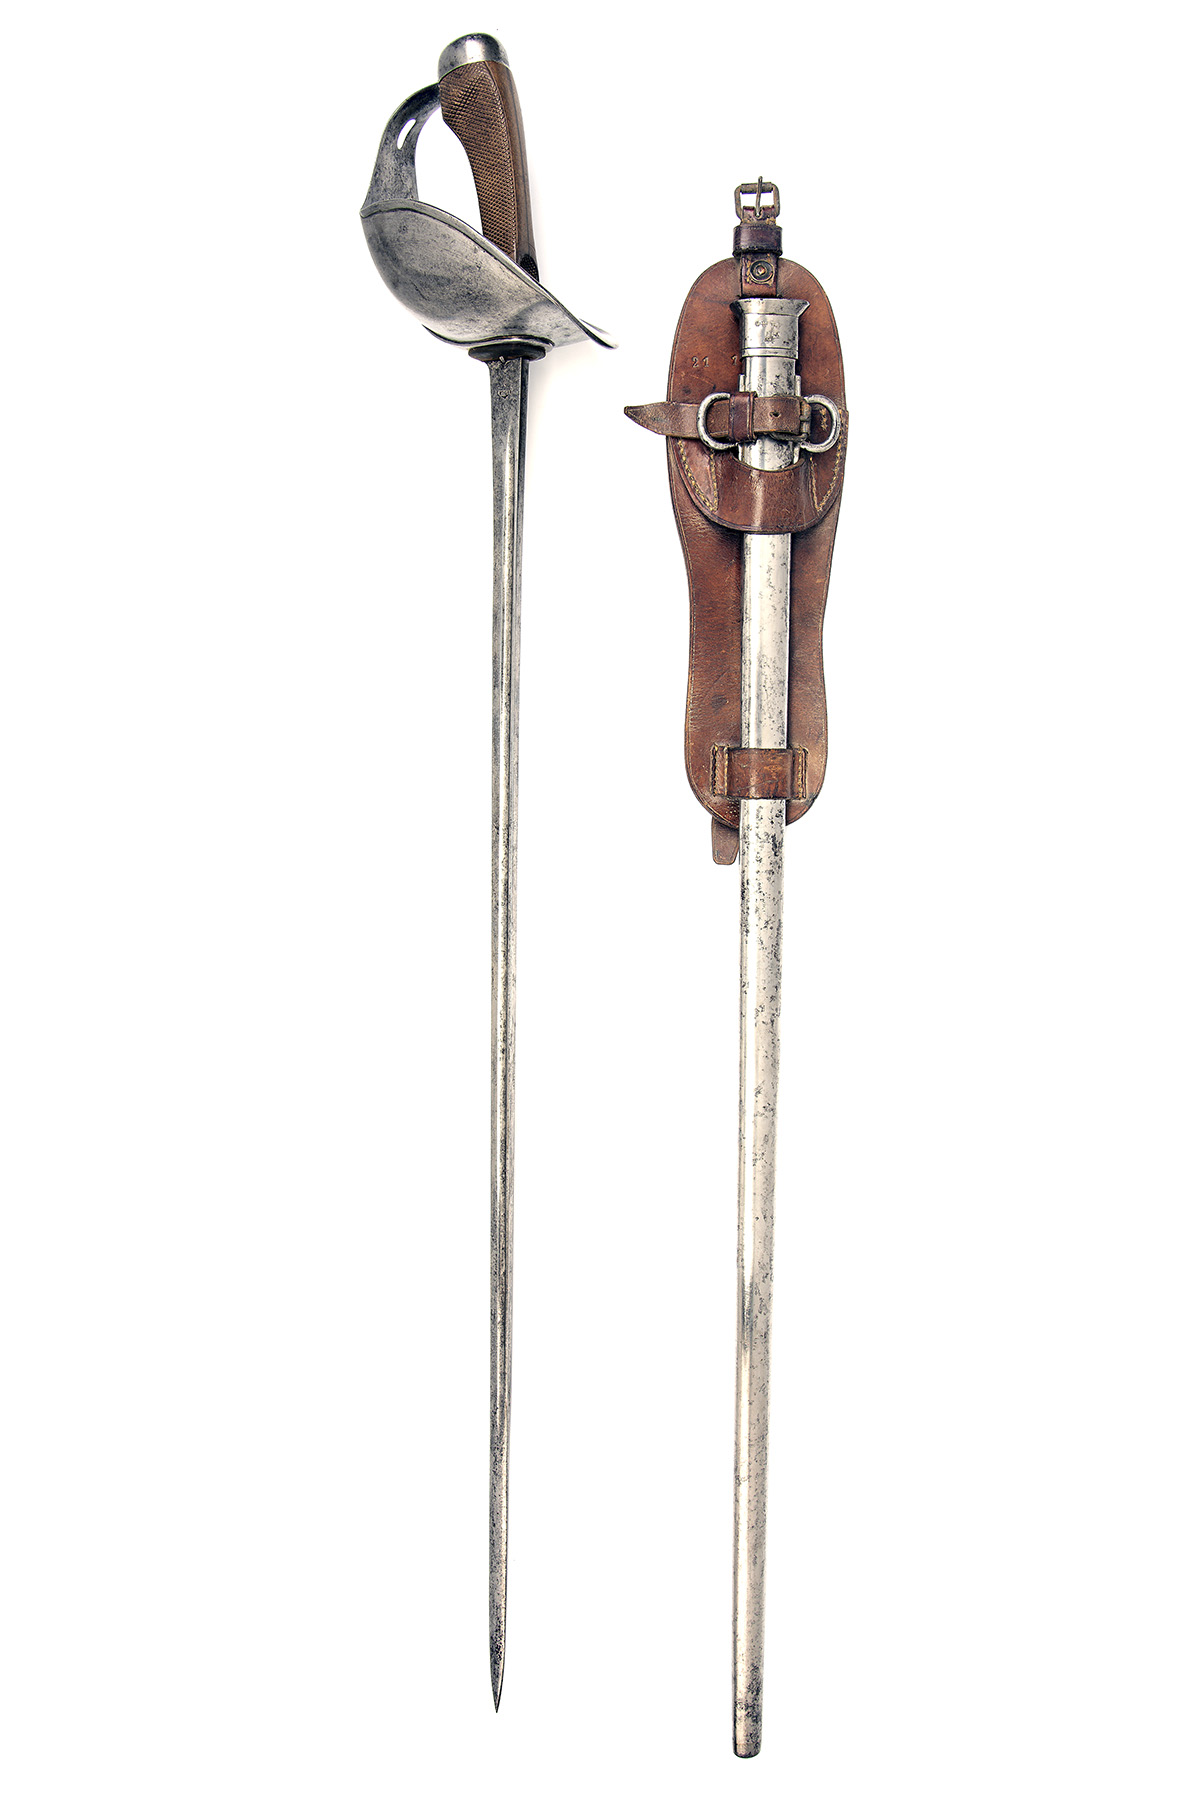 A BRITISH CAVALRY-TROOPER'S PATTERN '08 SWORD SIGNED 'S.B. & N. LTD', WITH SCARCE SADDLE-FROG, dated